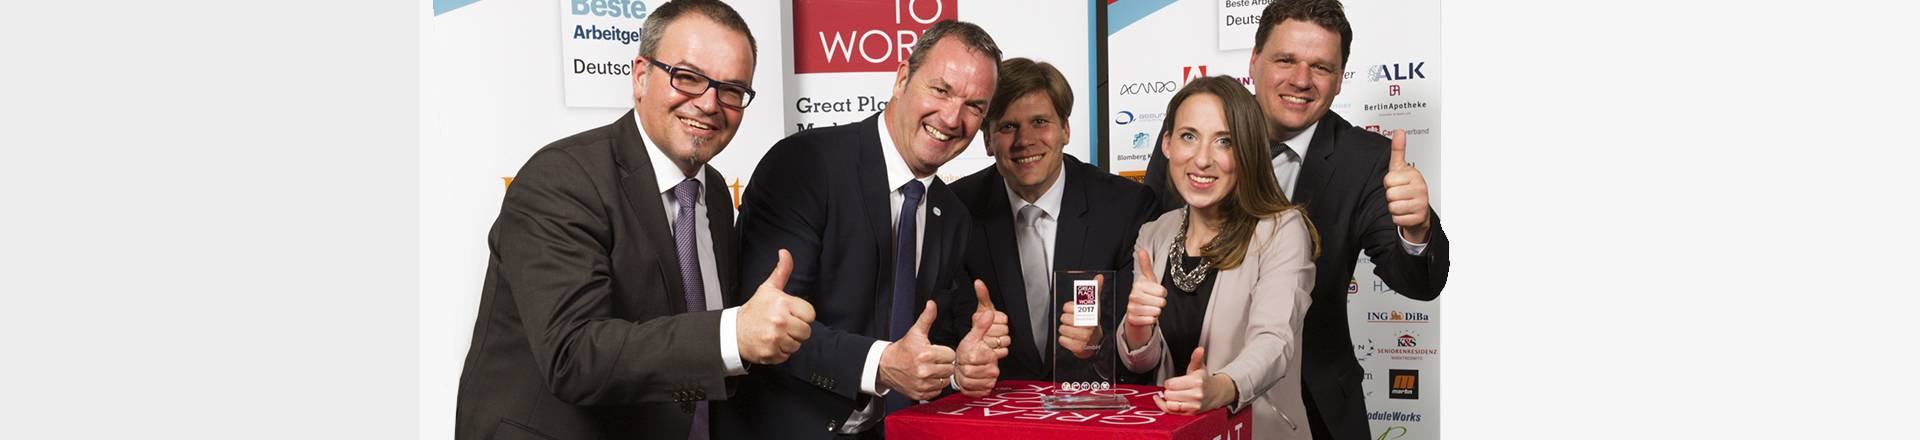 UWT wins Great Place to Work Award 2017